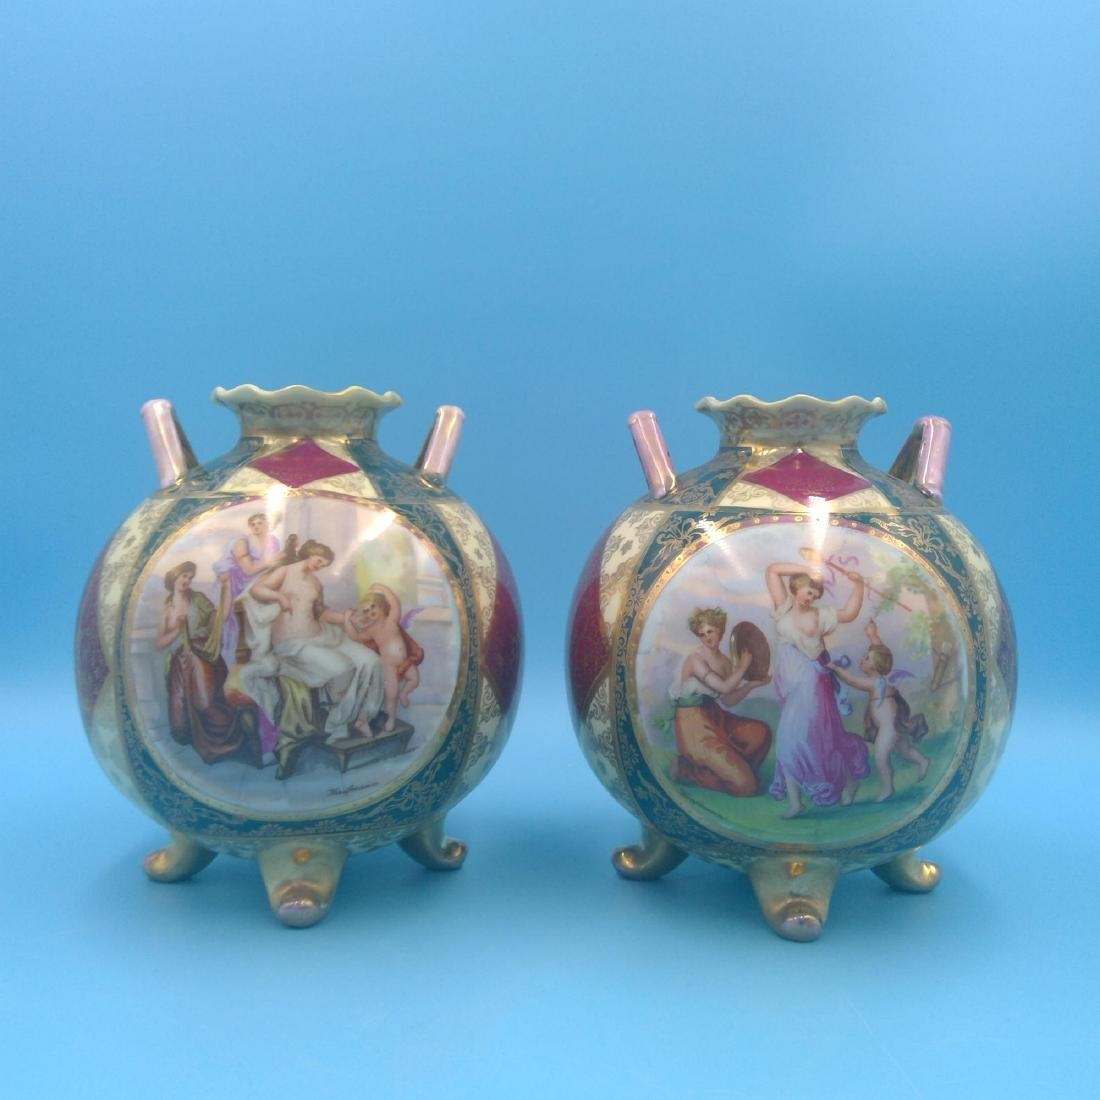 PAIR OF ROYAL VIENNA KAUFMANN SCENERY VASES